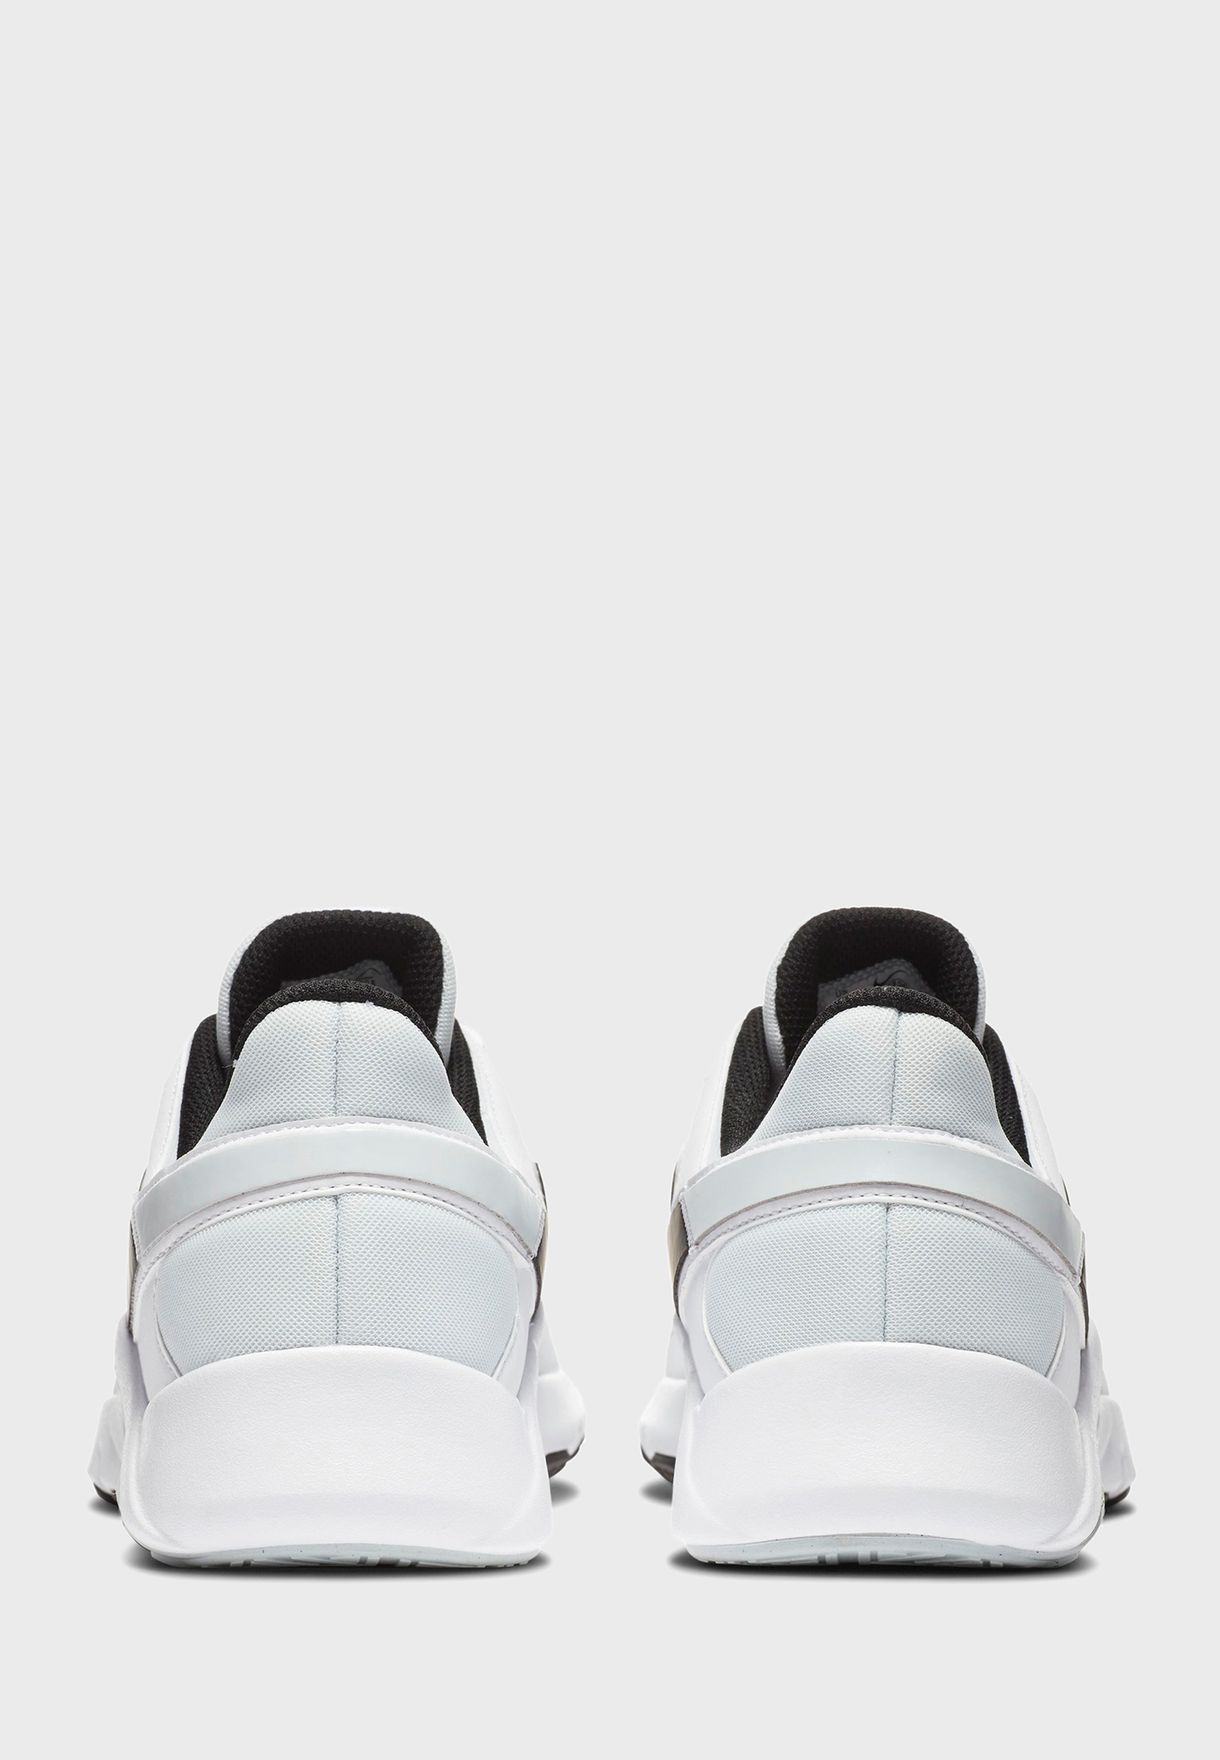 NIKE Кроссовки мужские LEGEND ESSENTIAL 2, white, black. Фото N2